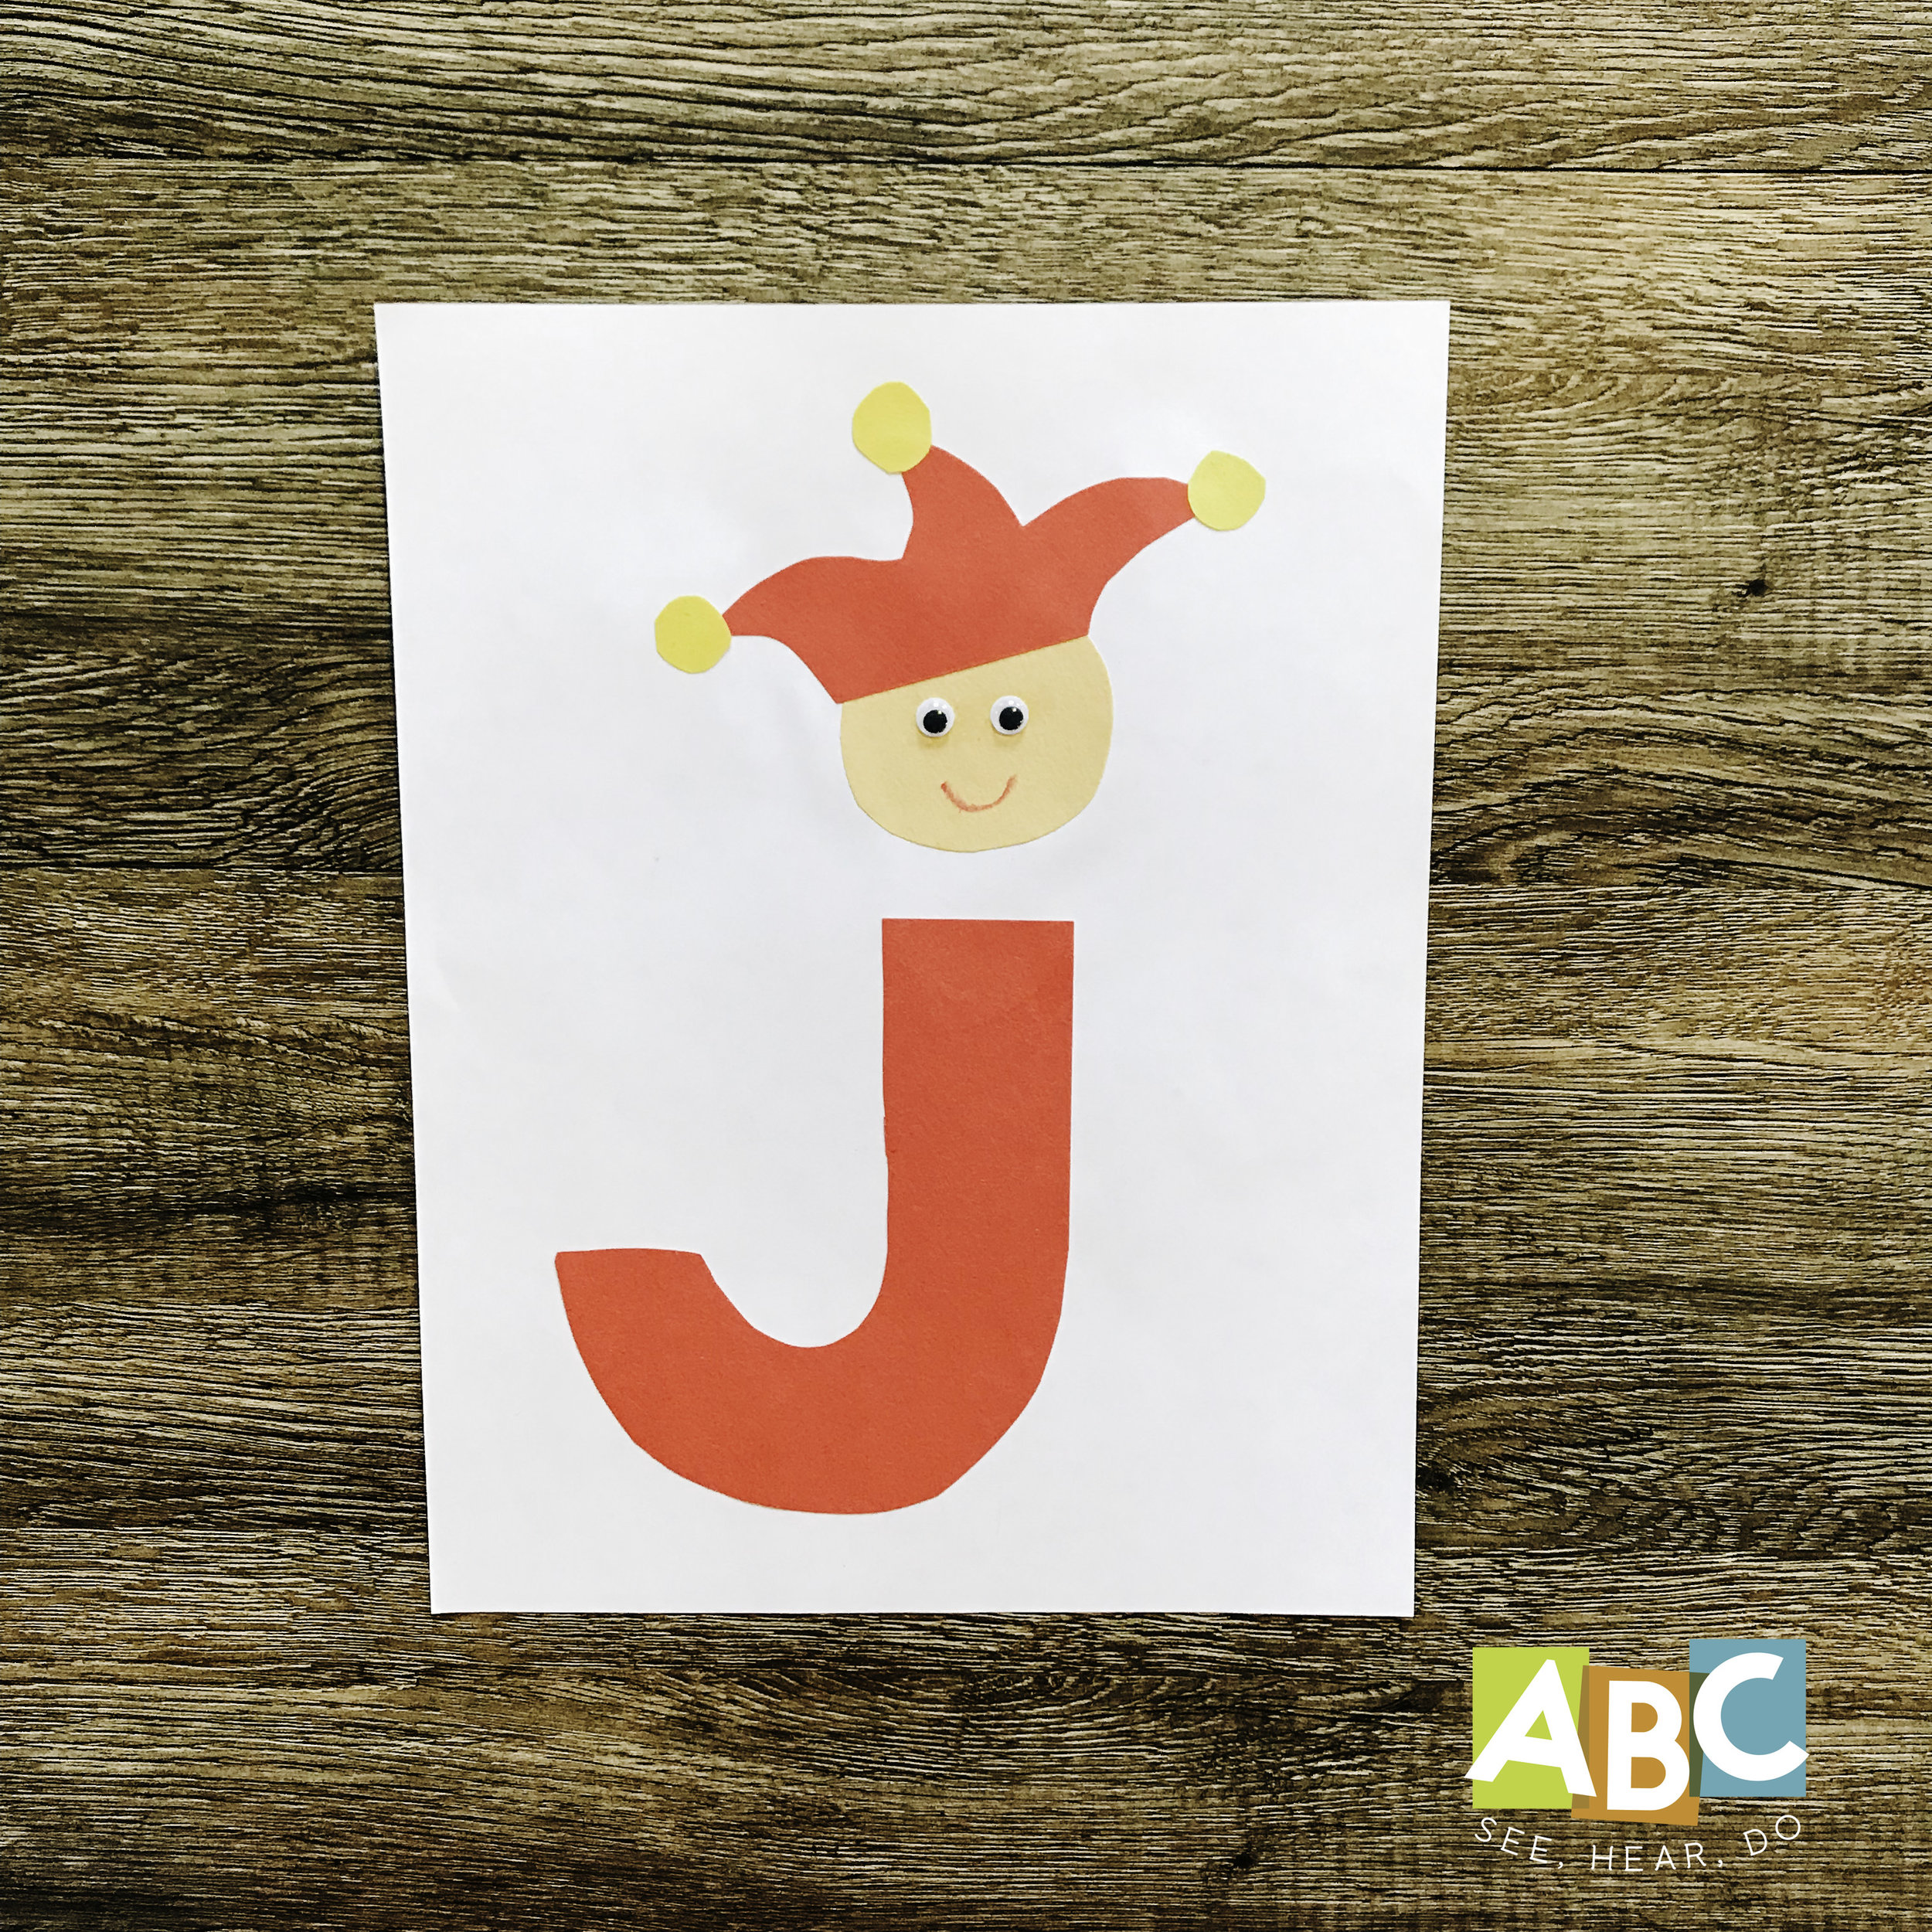 Letter j Crafts and Activities — ABC See, Hear, Do